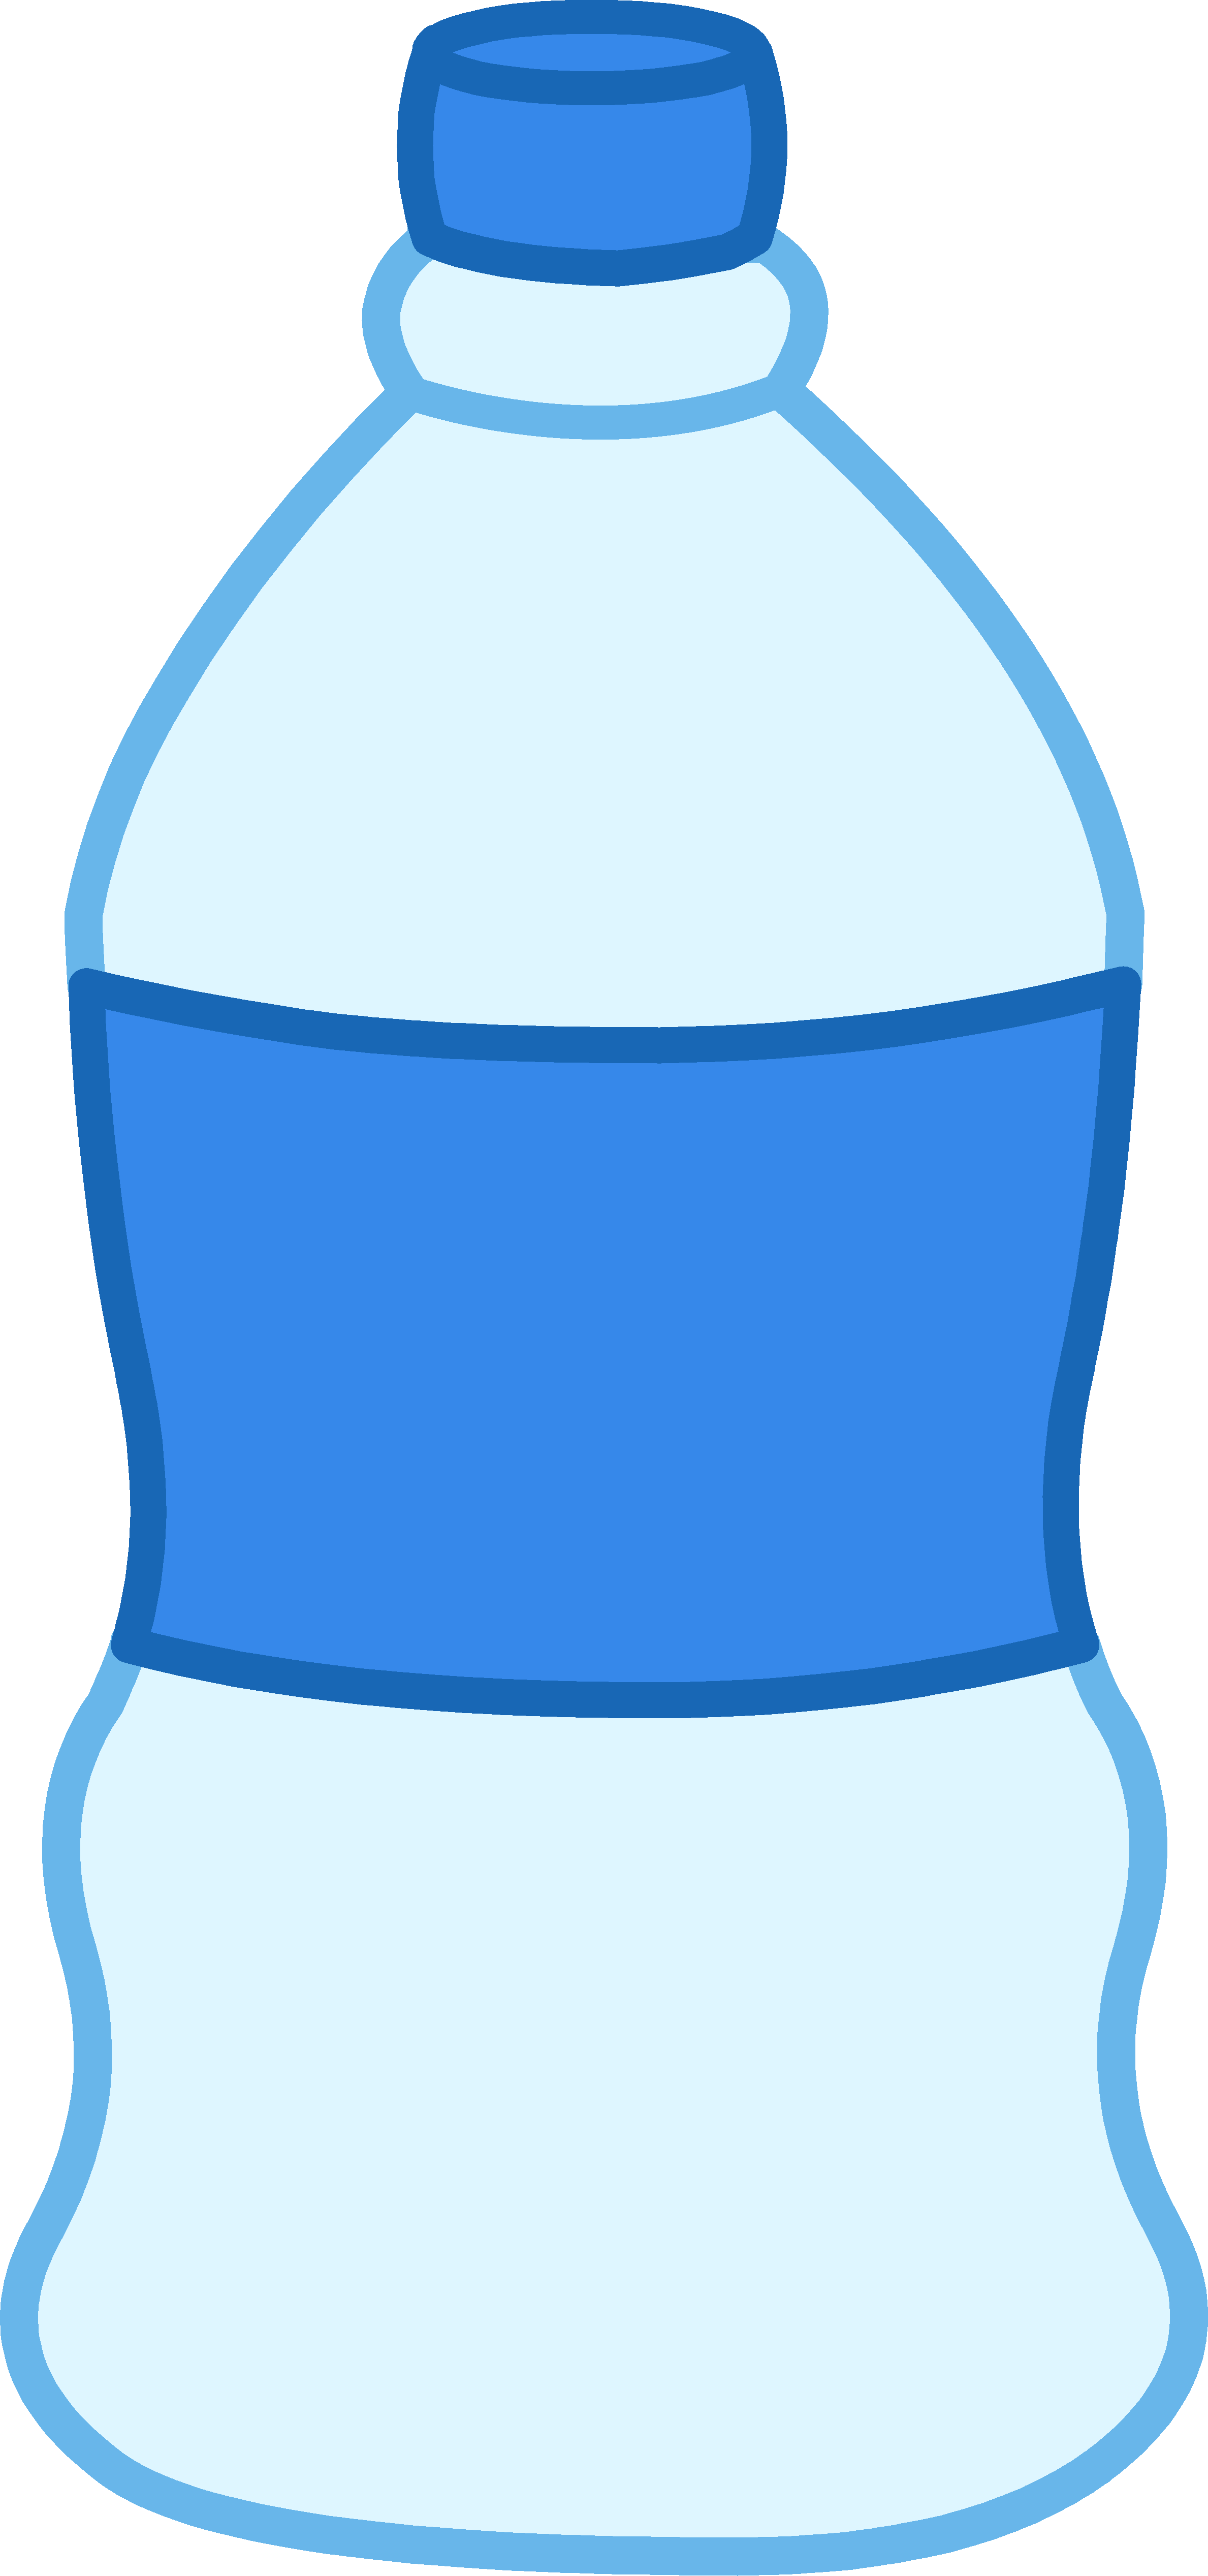 Water bottle cartoon png. Clipart